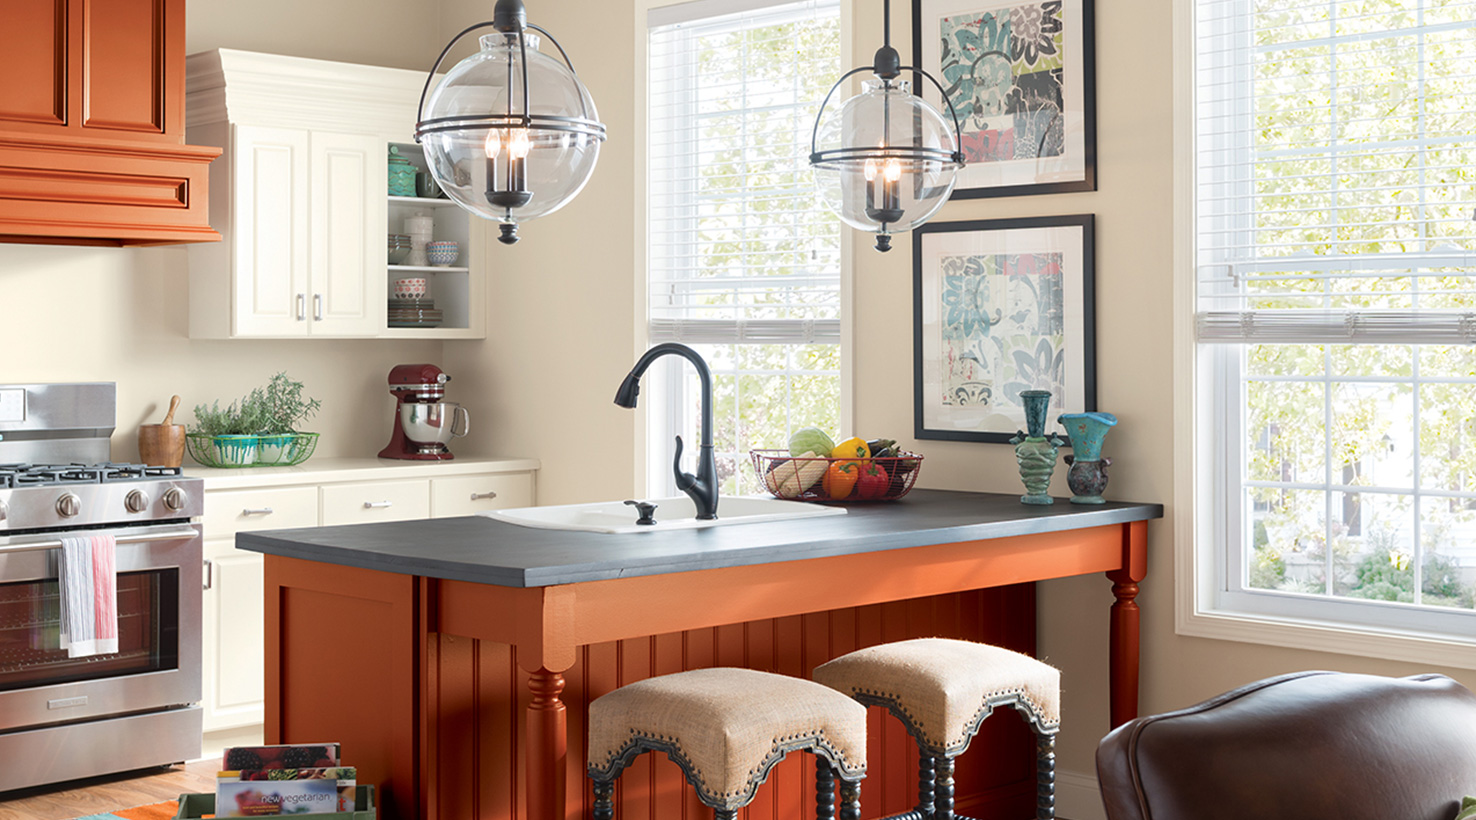 kitchen paint color ideas inspiration gallery sherwin williams rh sherwin williams com